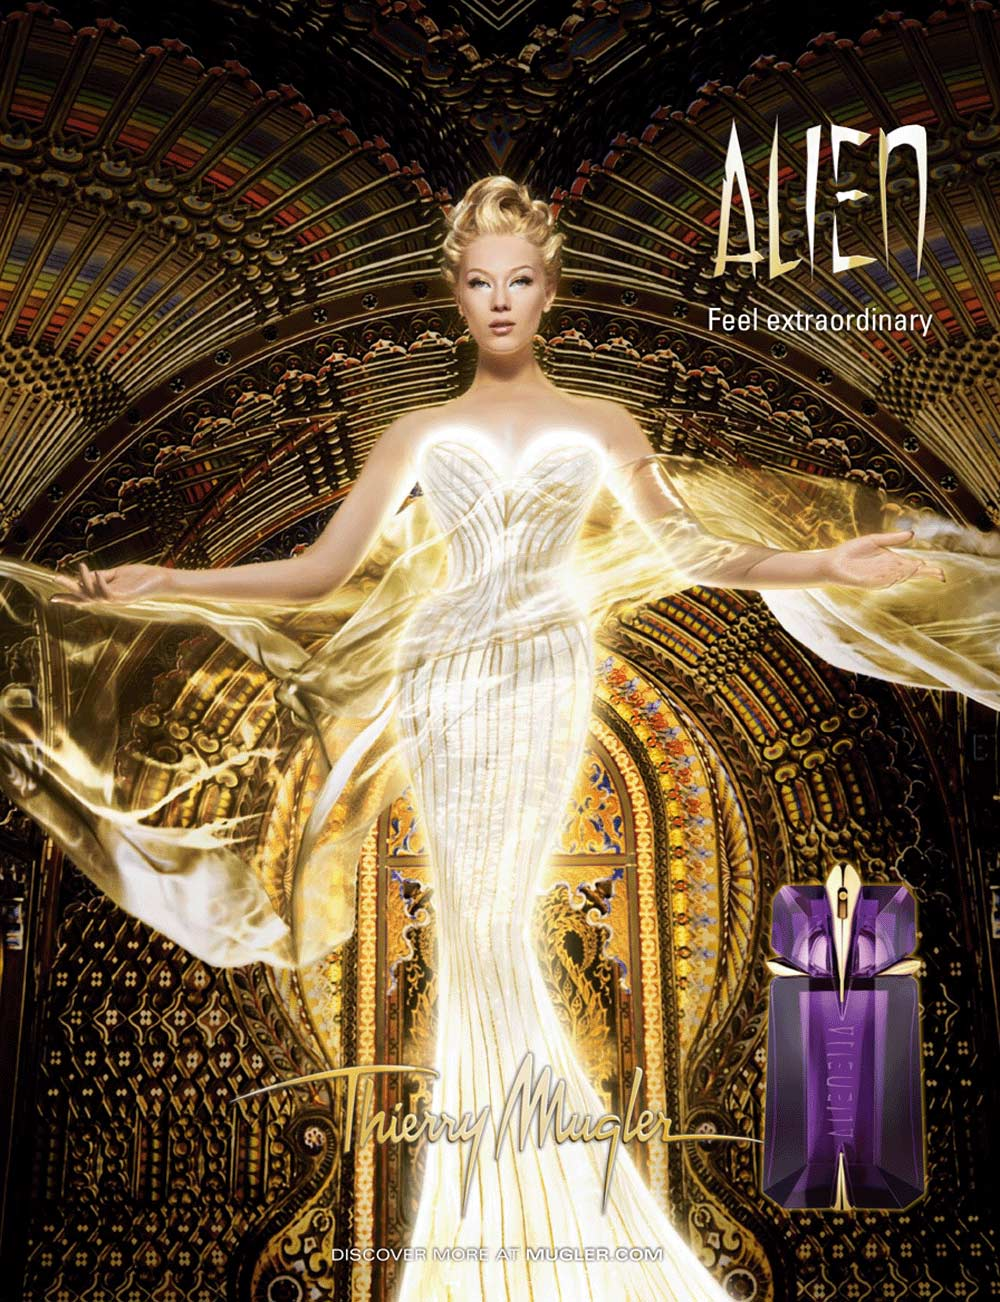 Alien by Thierry Mugler, 10 years already, Flashback!